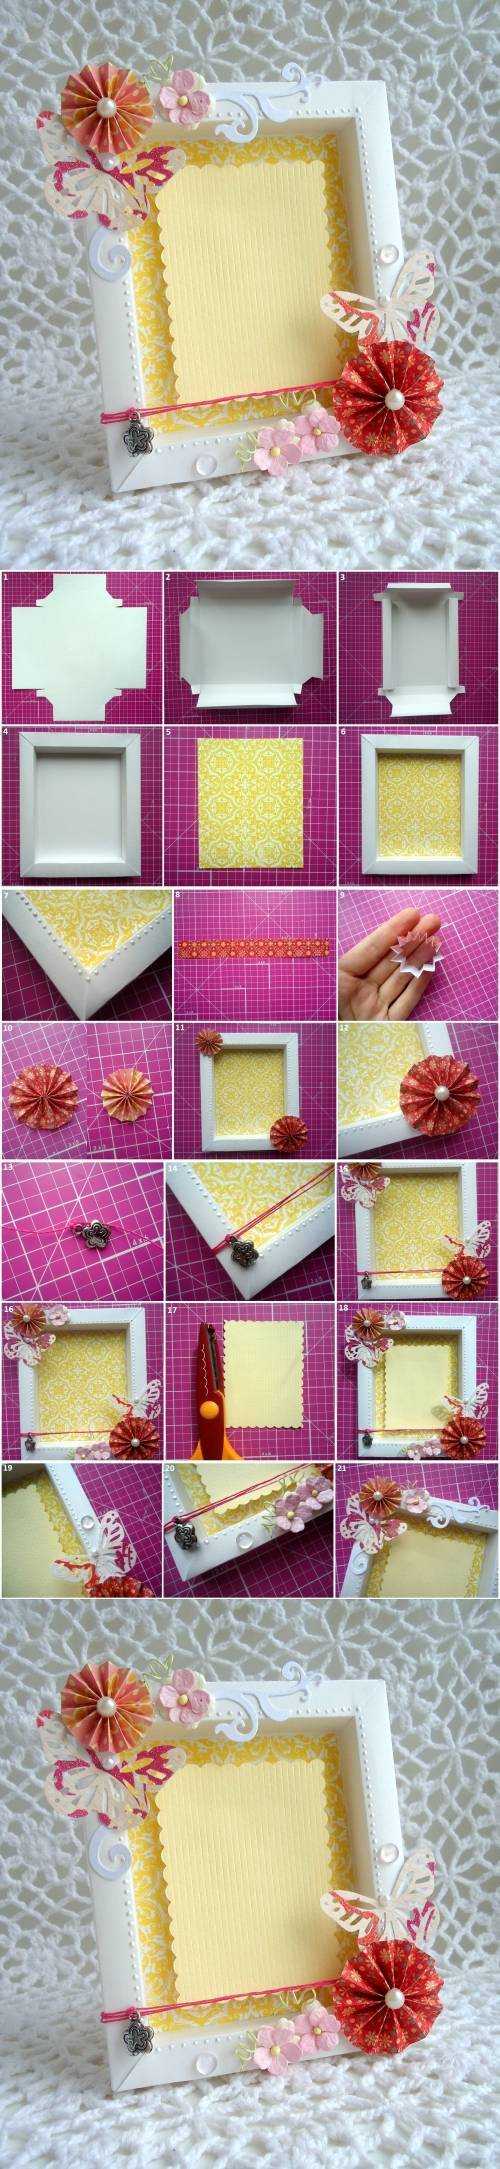 DIY Cool Picture Frame Designs